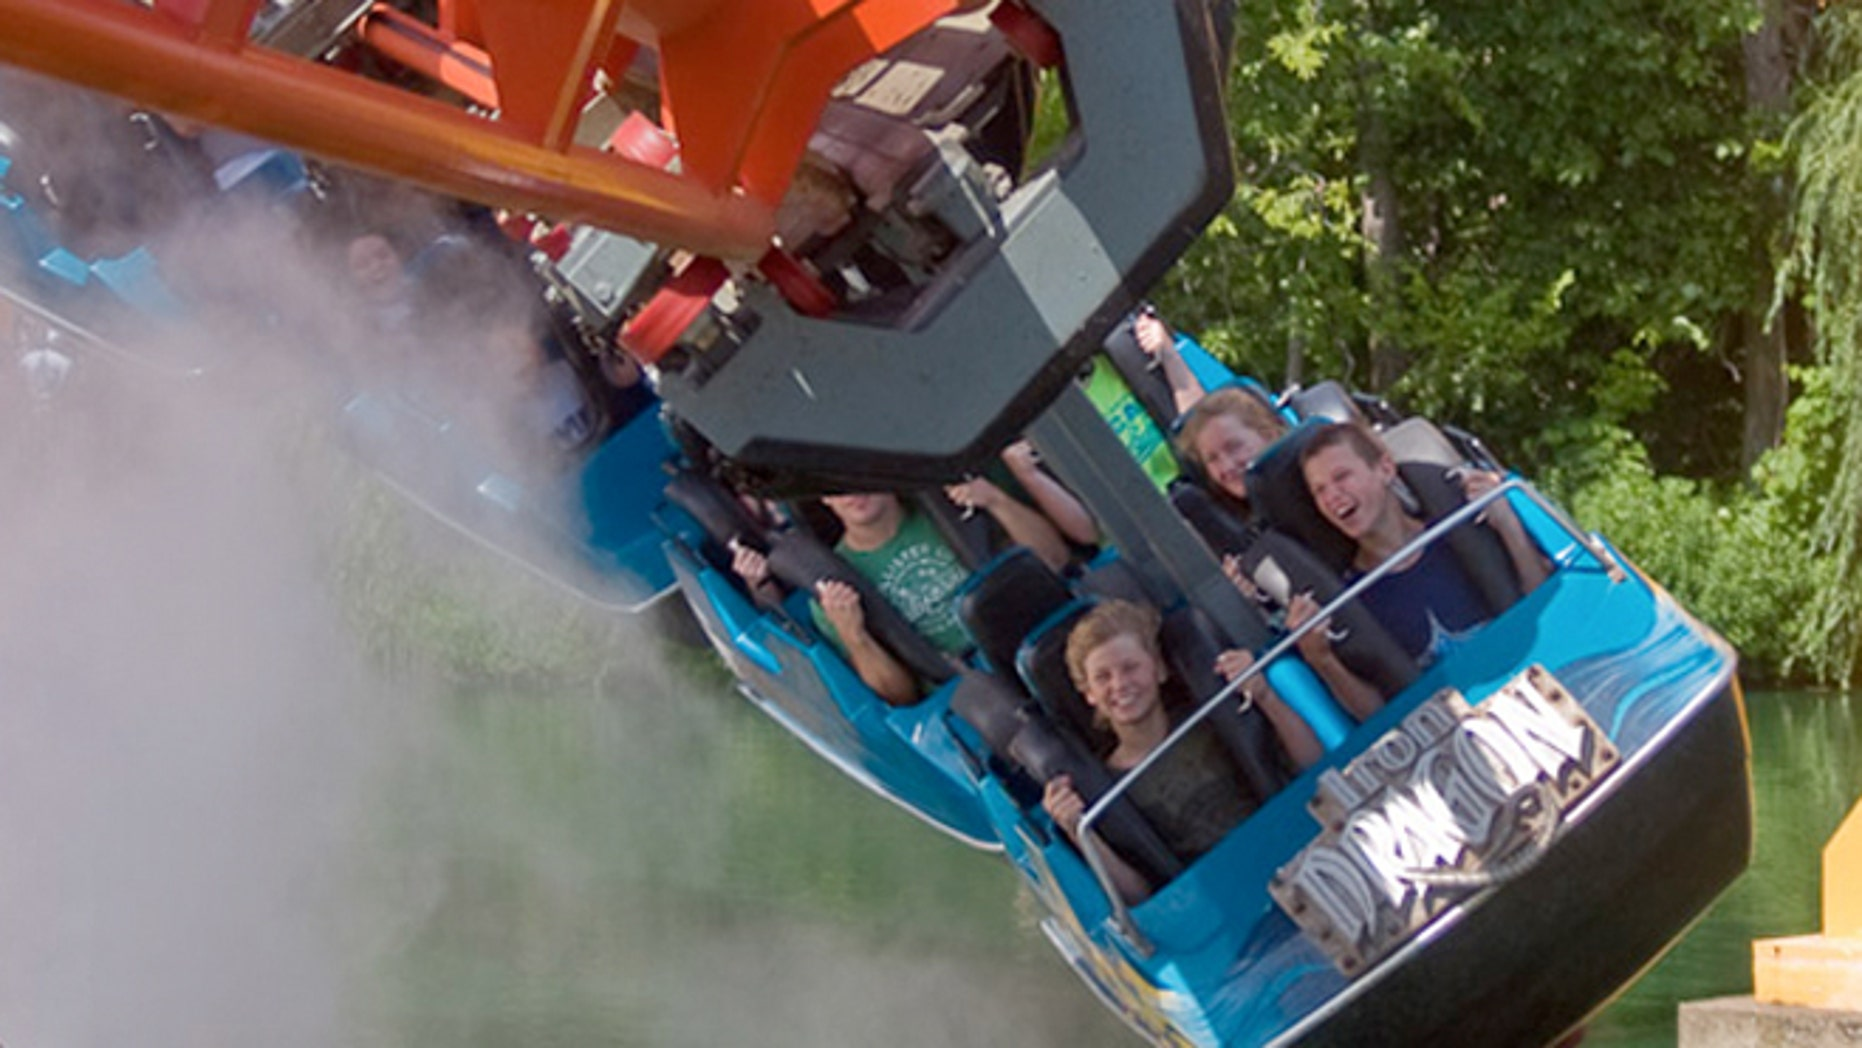 The Iron Dragon at Cedar Grive is a suspended coaster that swoops around a track that takes you around the woods and over a lagoon.